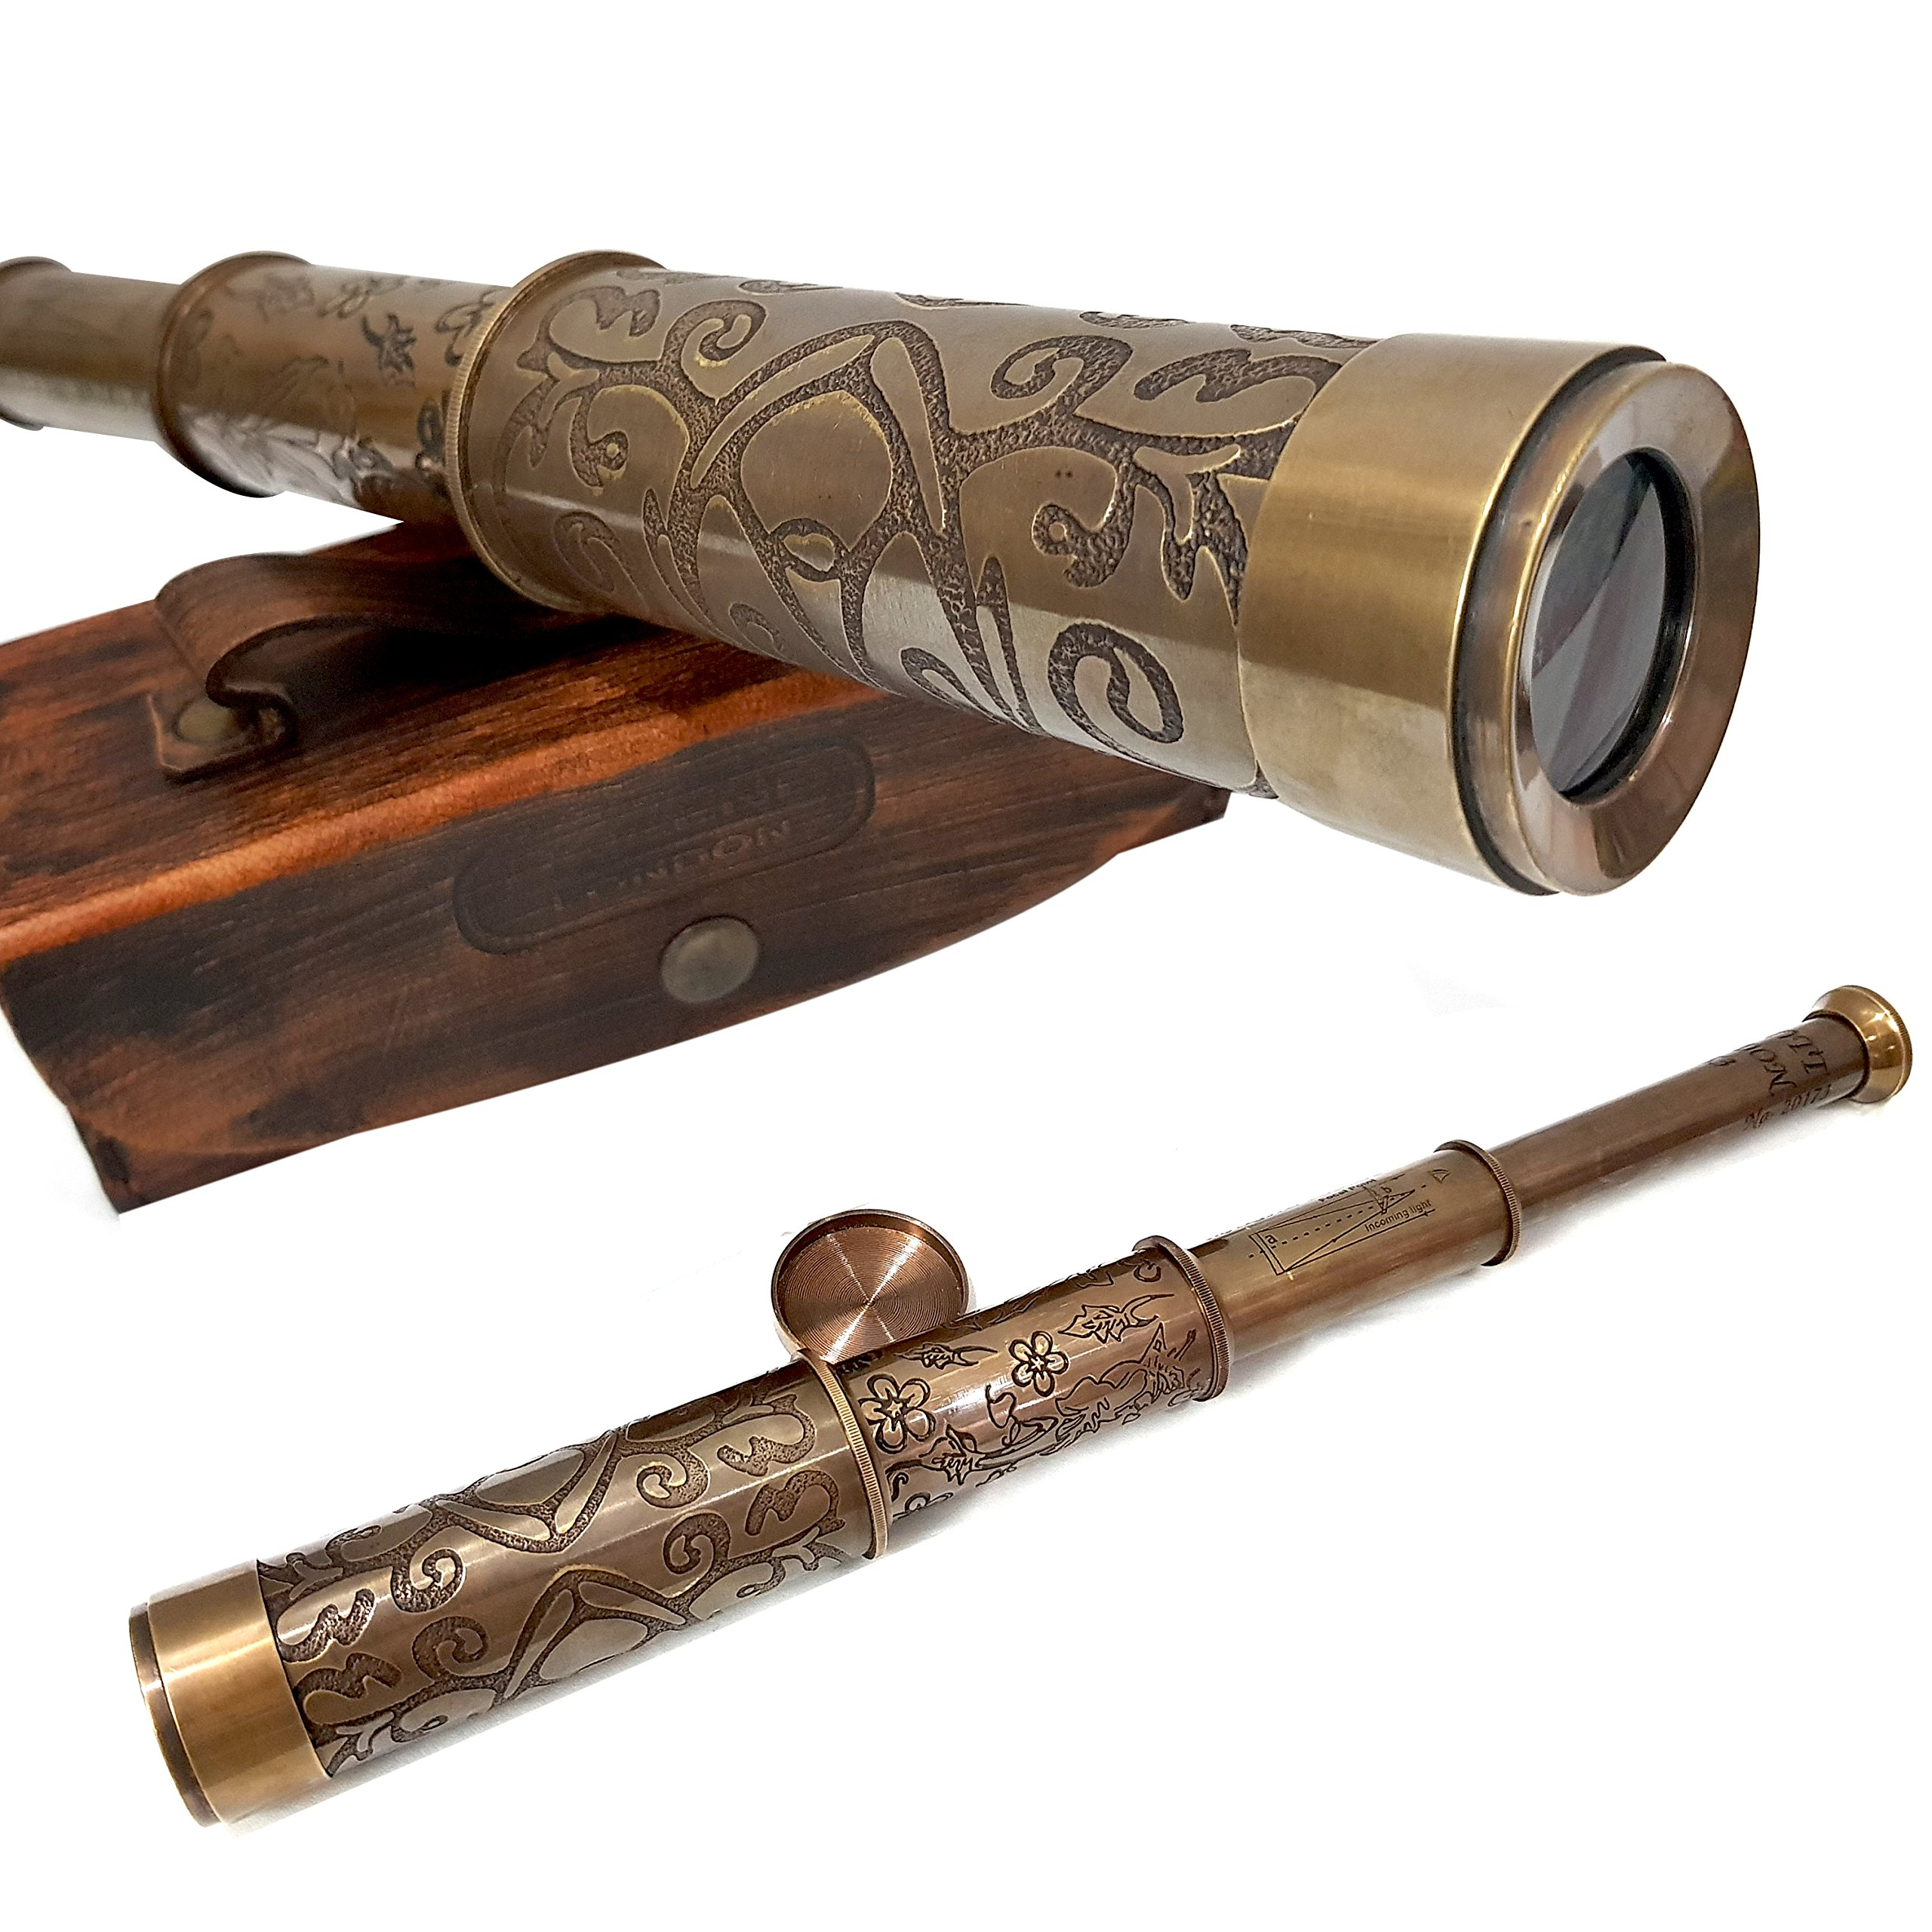 A Brass Nautical Handmade Retro Telescope Vintage Leather Box Pirate Movie Prop Designer Spyglass by Collectibles Buy